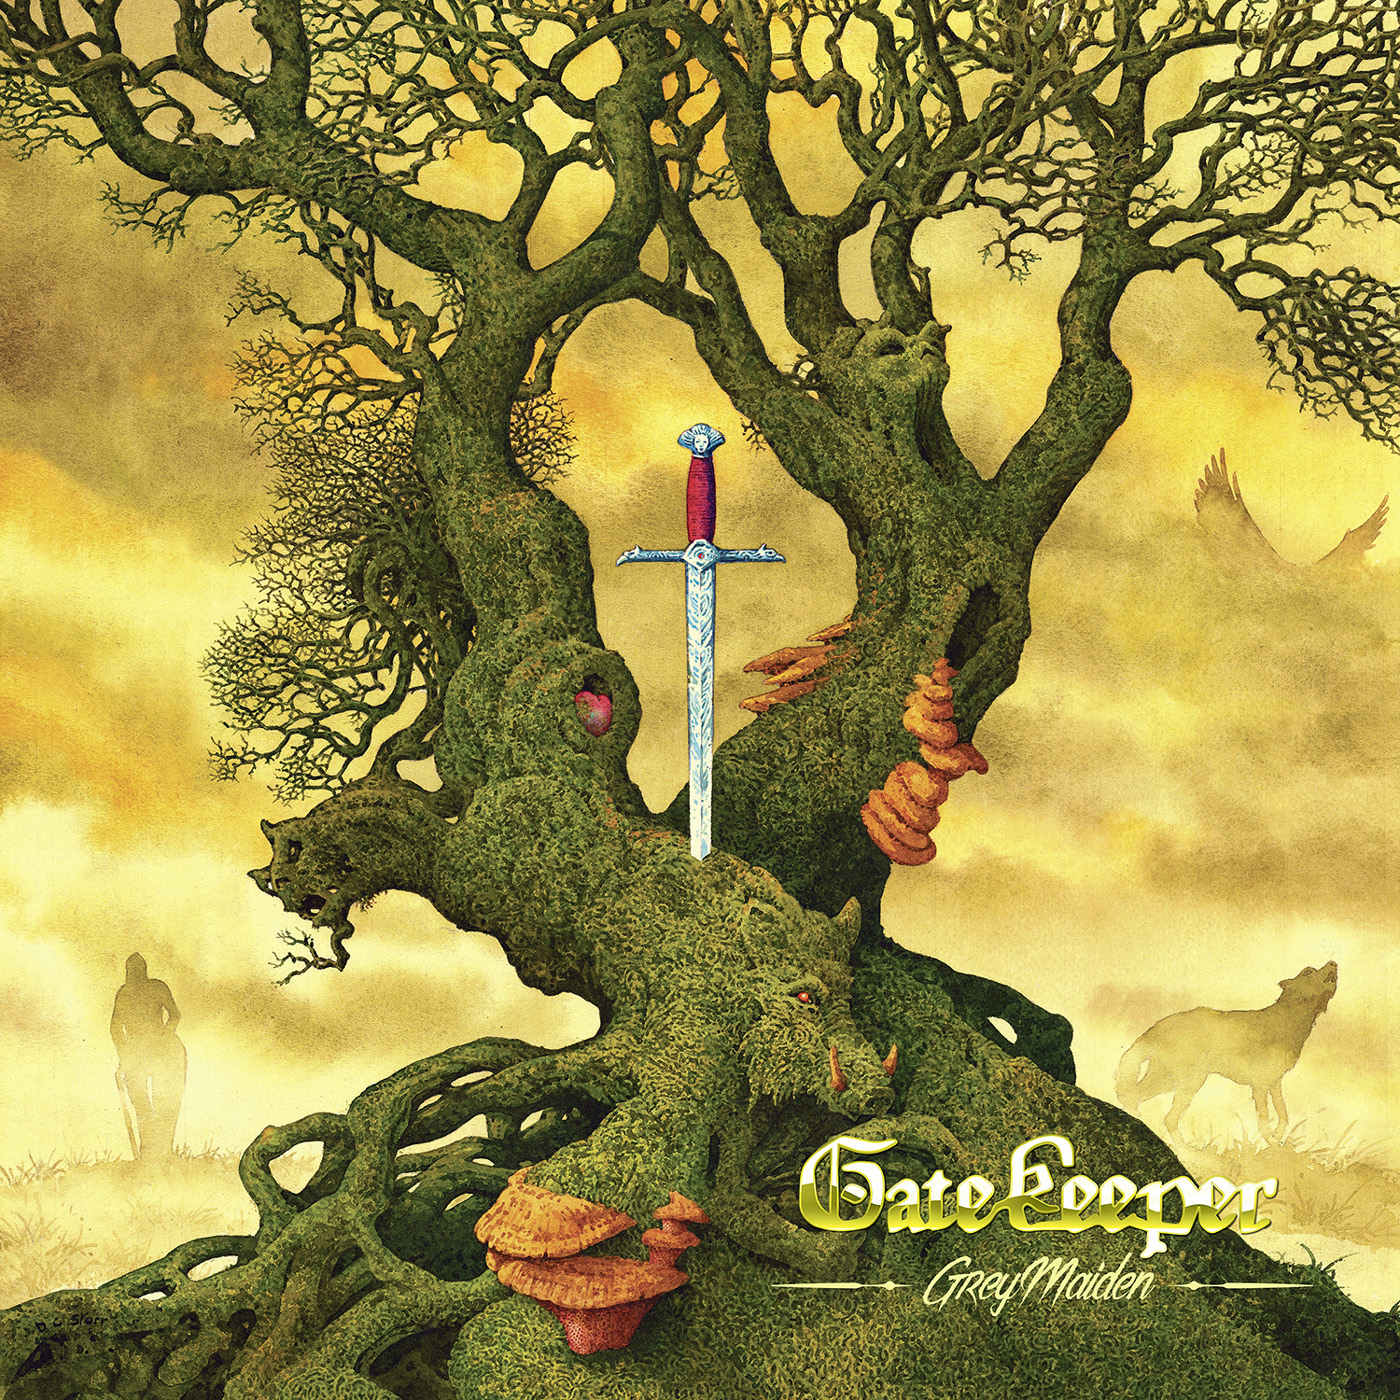 gatekeeper-grey-maiden-neue-4-track-ep-zur-tour-mit-sanhedrin-review